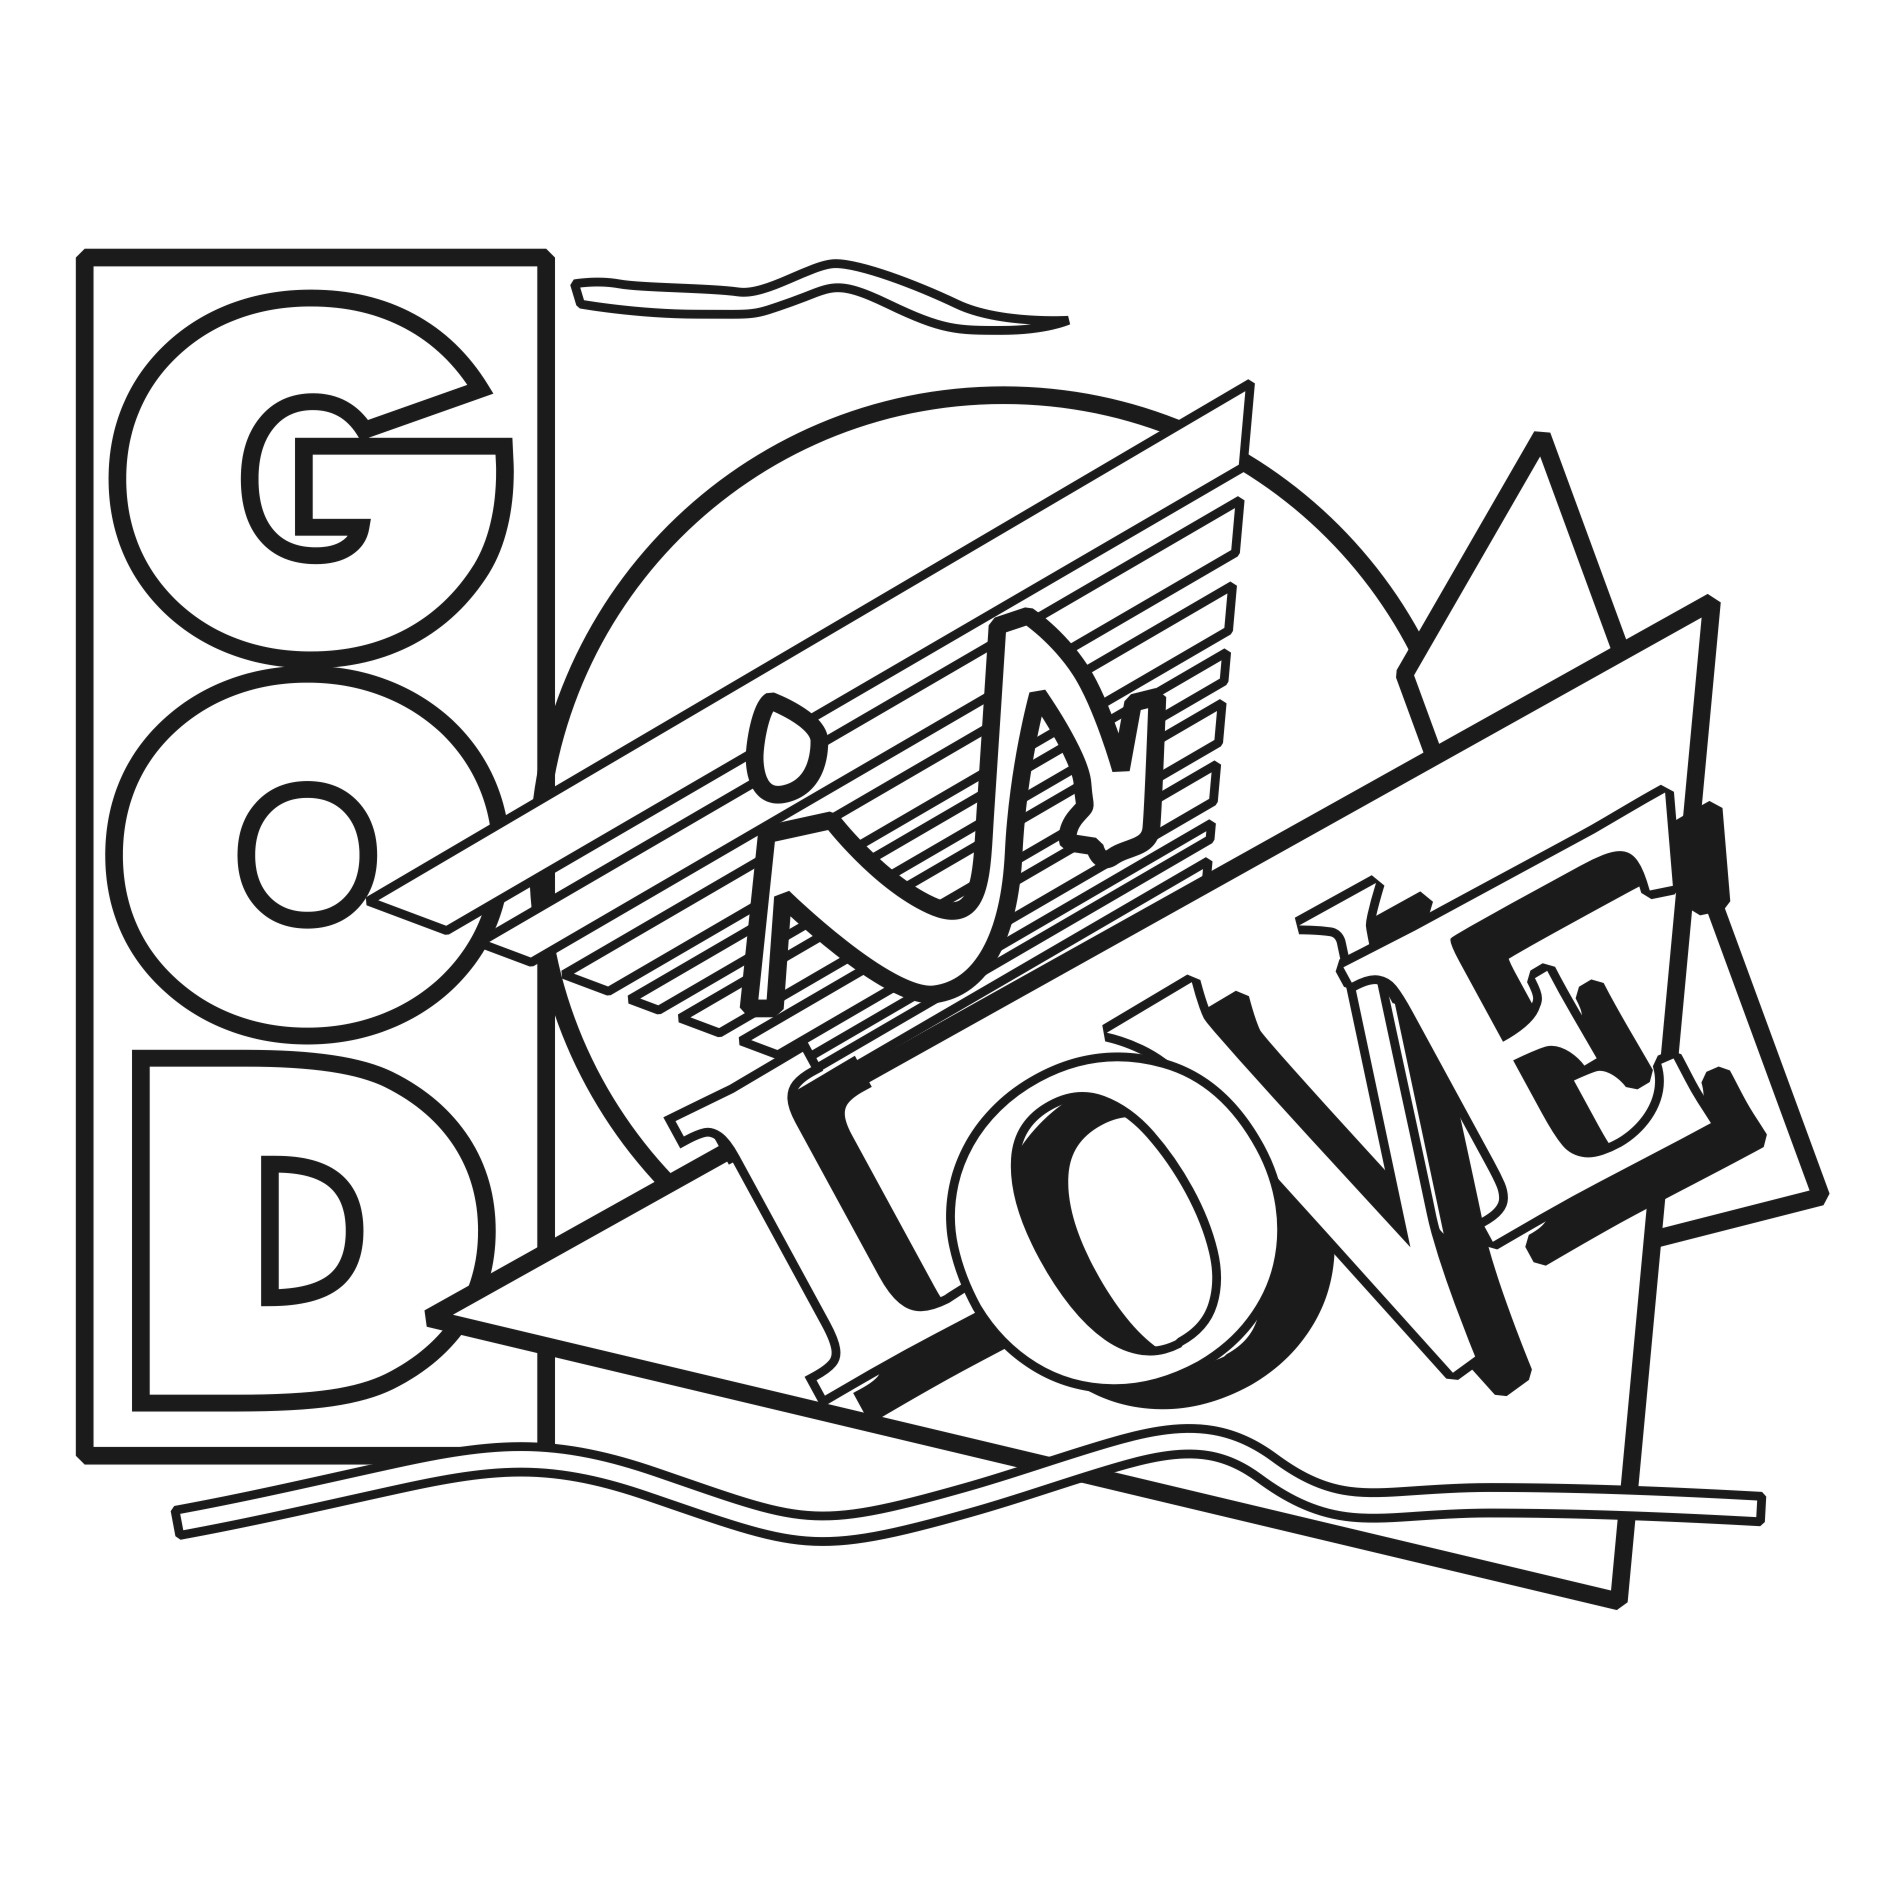 God is love clipart black and white graphic free stock Free Christian Love Cliparts, Download Free Clip Art, Free Clip Art ... graphic free stock